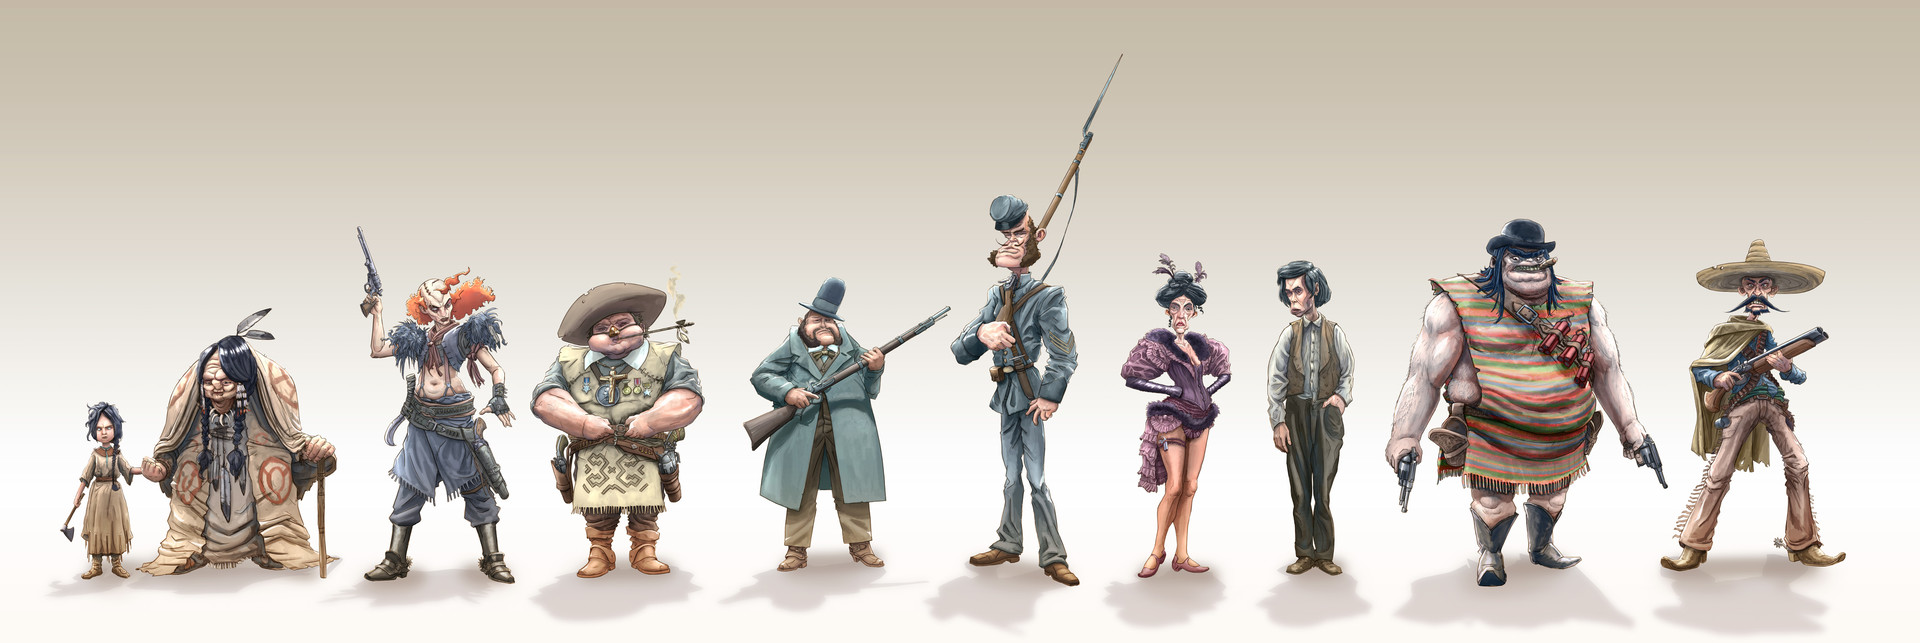 Dirk wachsmuth wild west challenge character lineup bydirkwachsmuth